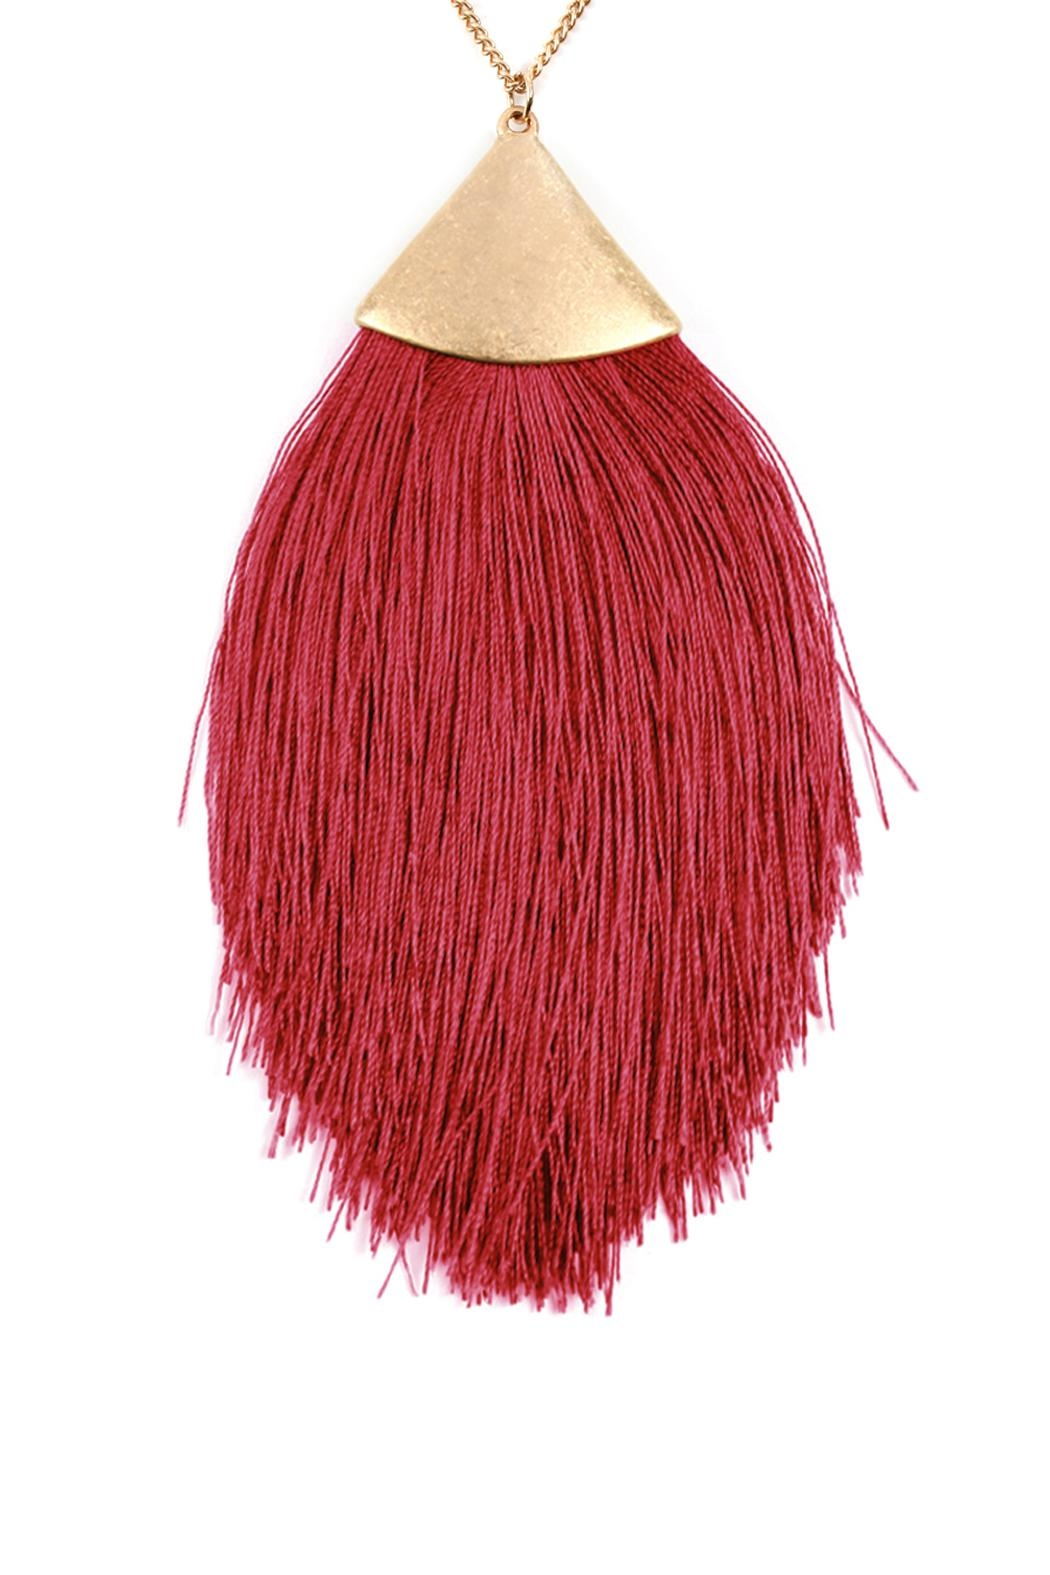 Riah Fashion Oversized-Tassel Dainty Necklace - Front Full Image